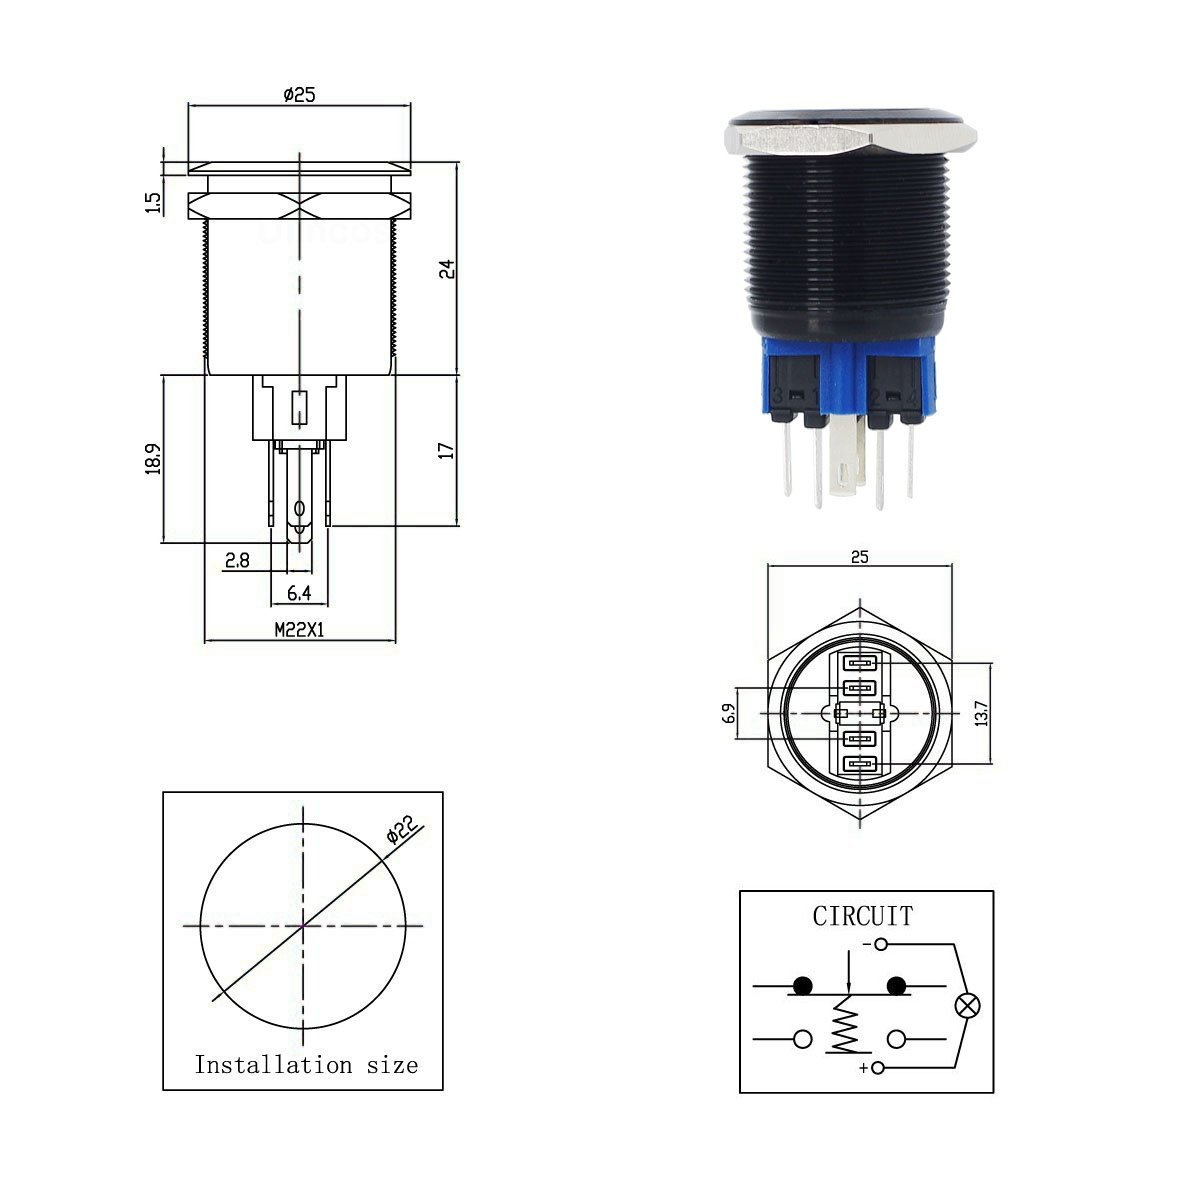 Yakamoz Dc12v 22mm 7 8 Mounting Hole Red Ring Led Light Momentary Switch Circuit Diagram On 12v Push Wiring Button Metal Industrial Boat Car Diy Black Lighting Amazon Canada